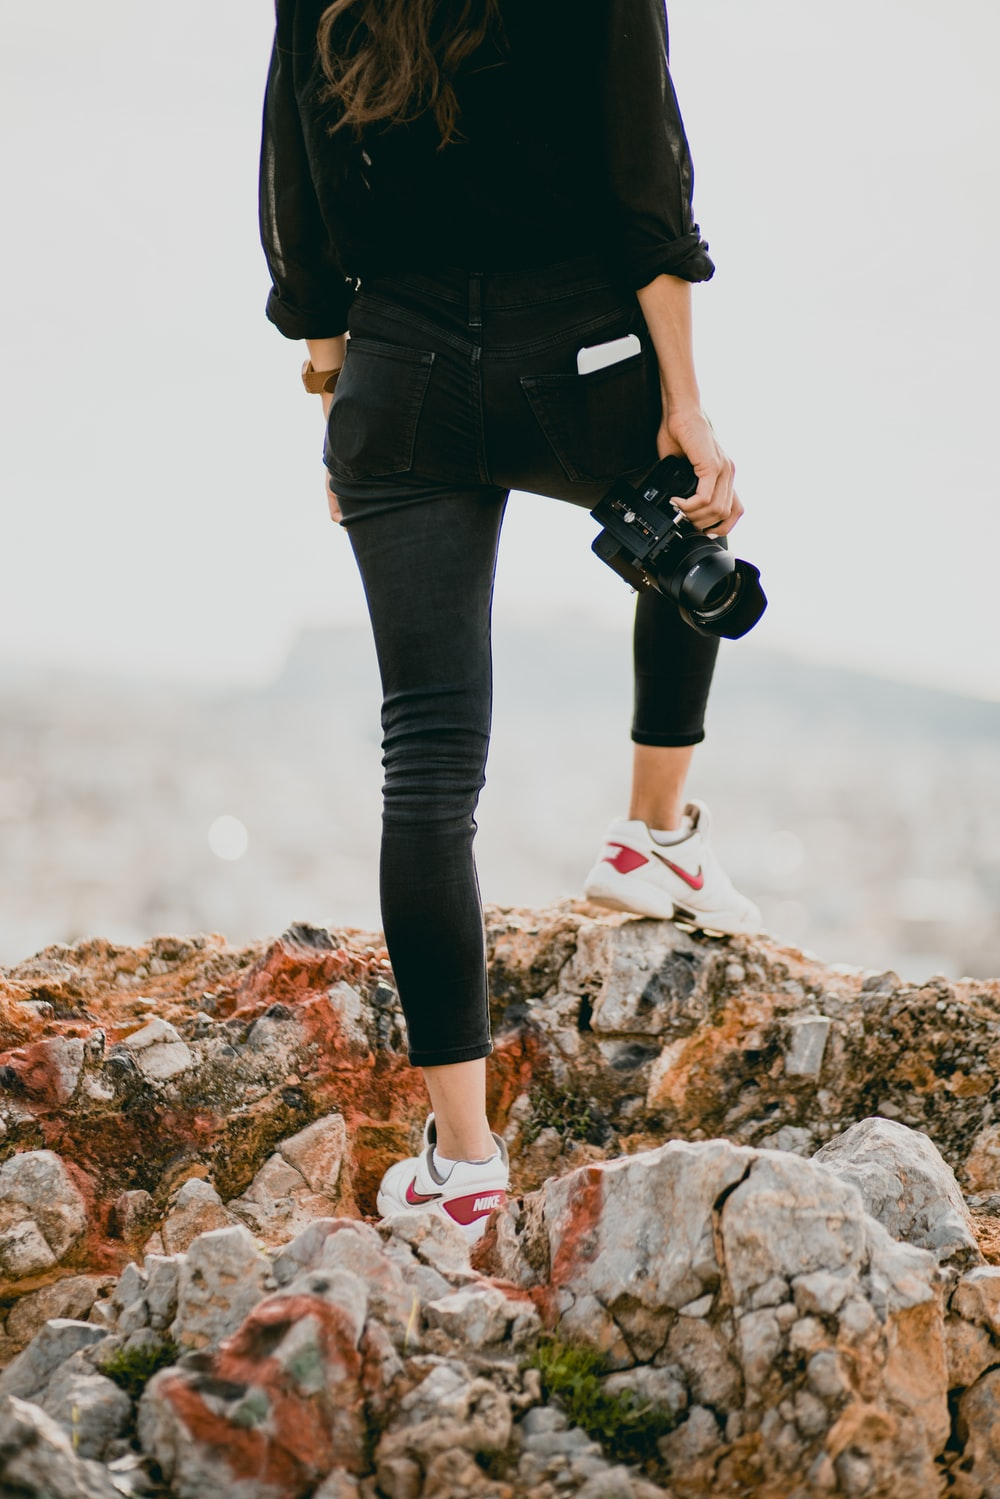 woman in black shirt and black pants holding black dslr camera